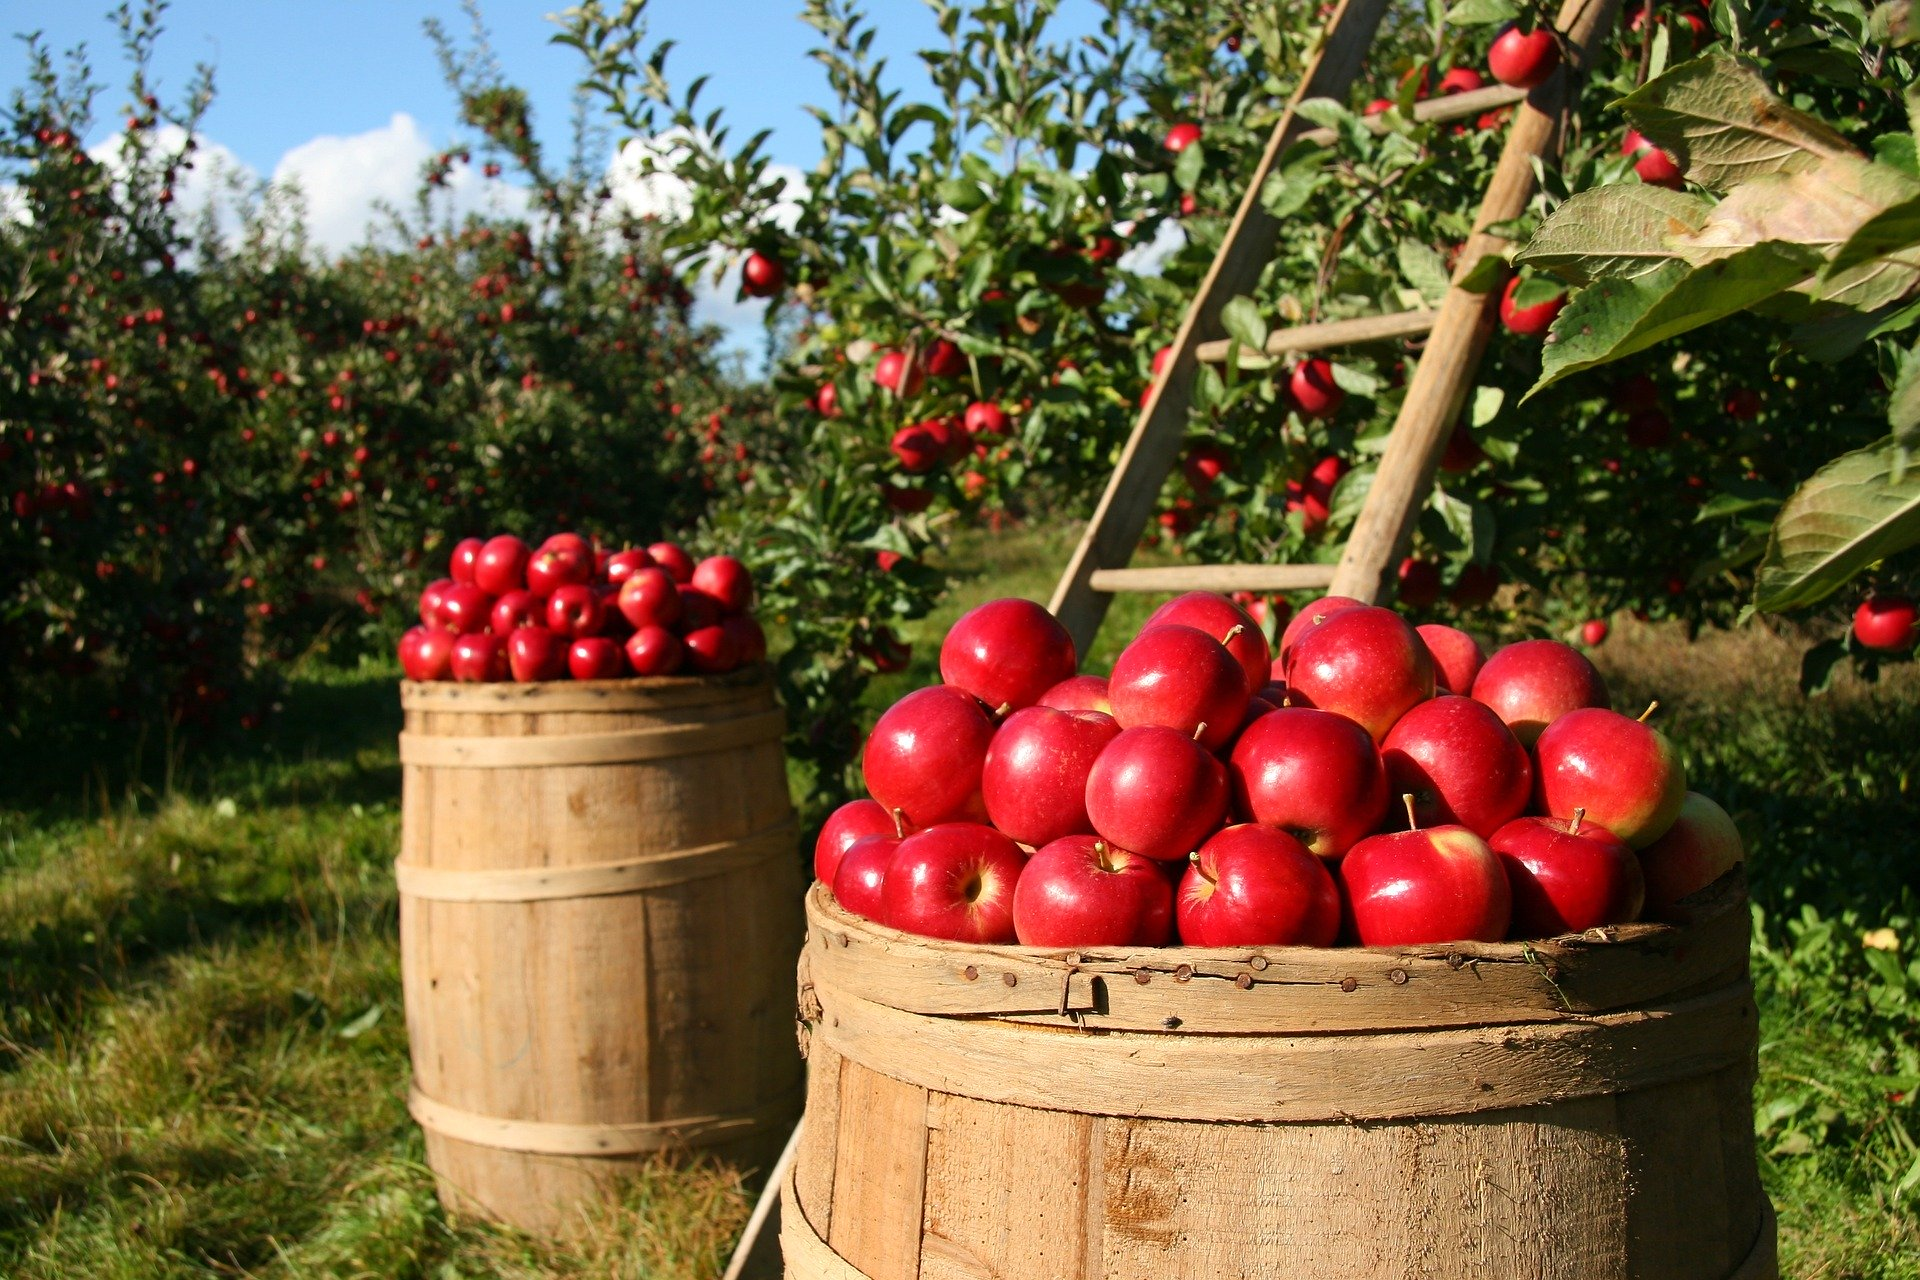 Newly harvested apples in the farm.